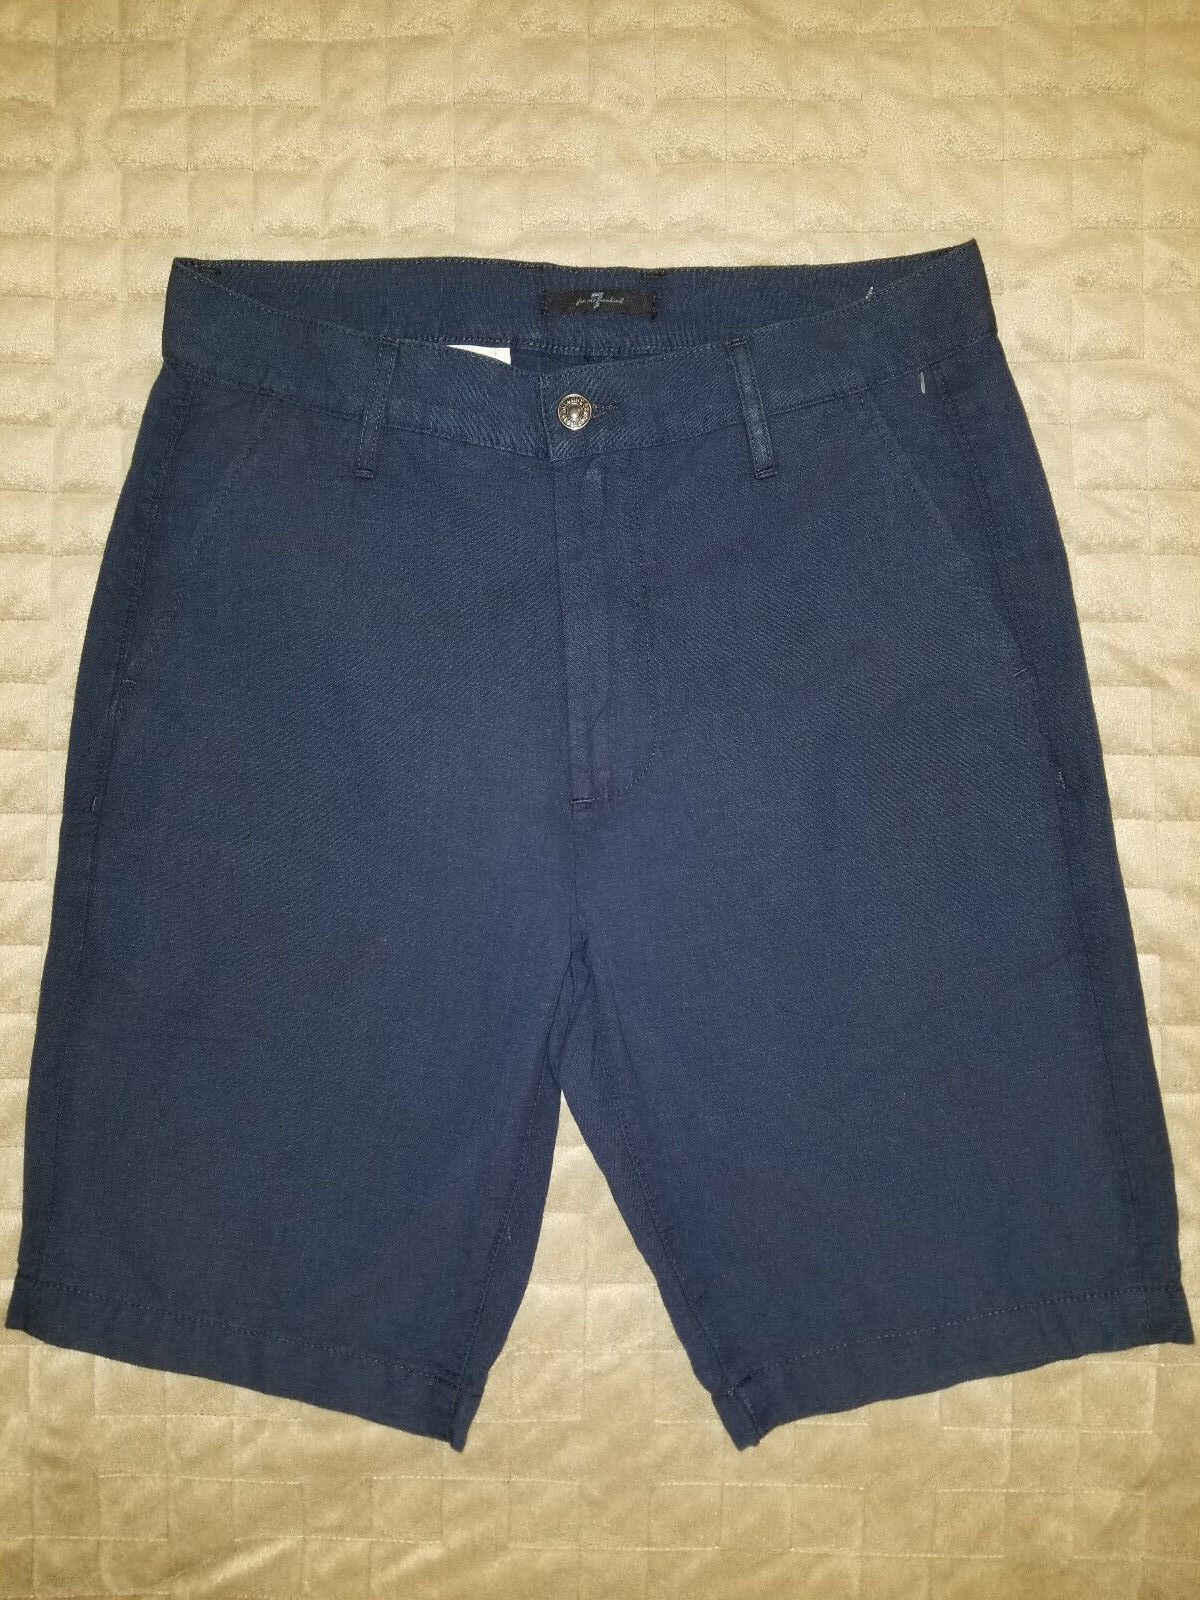 New 7 FOR ALL MANKIND men shorts bluee 29 MSRP